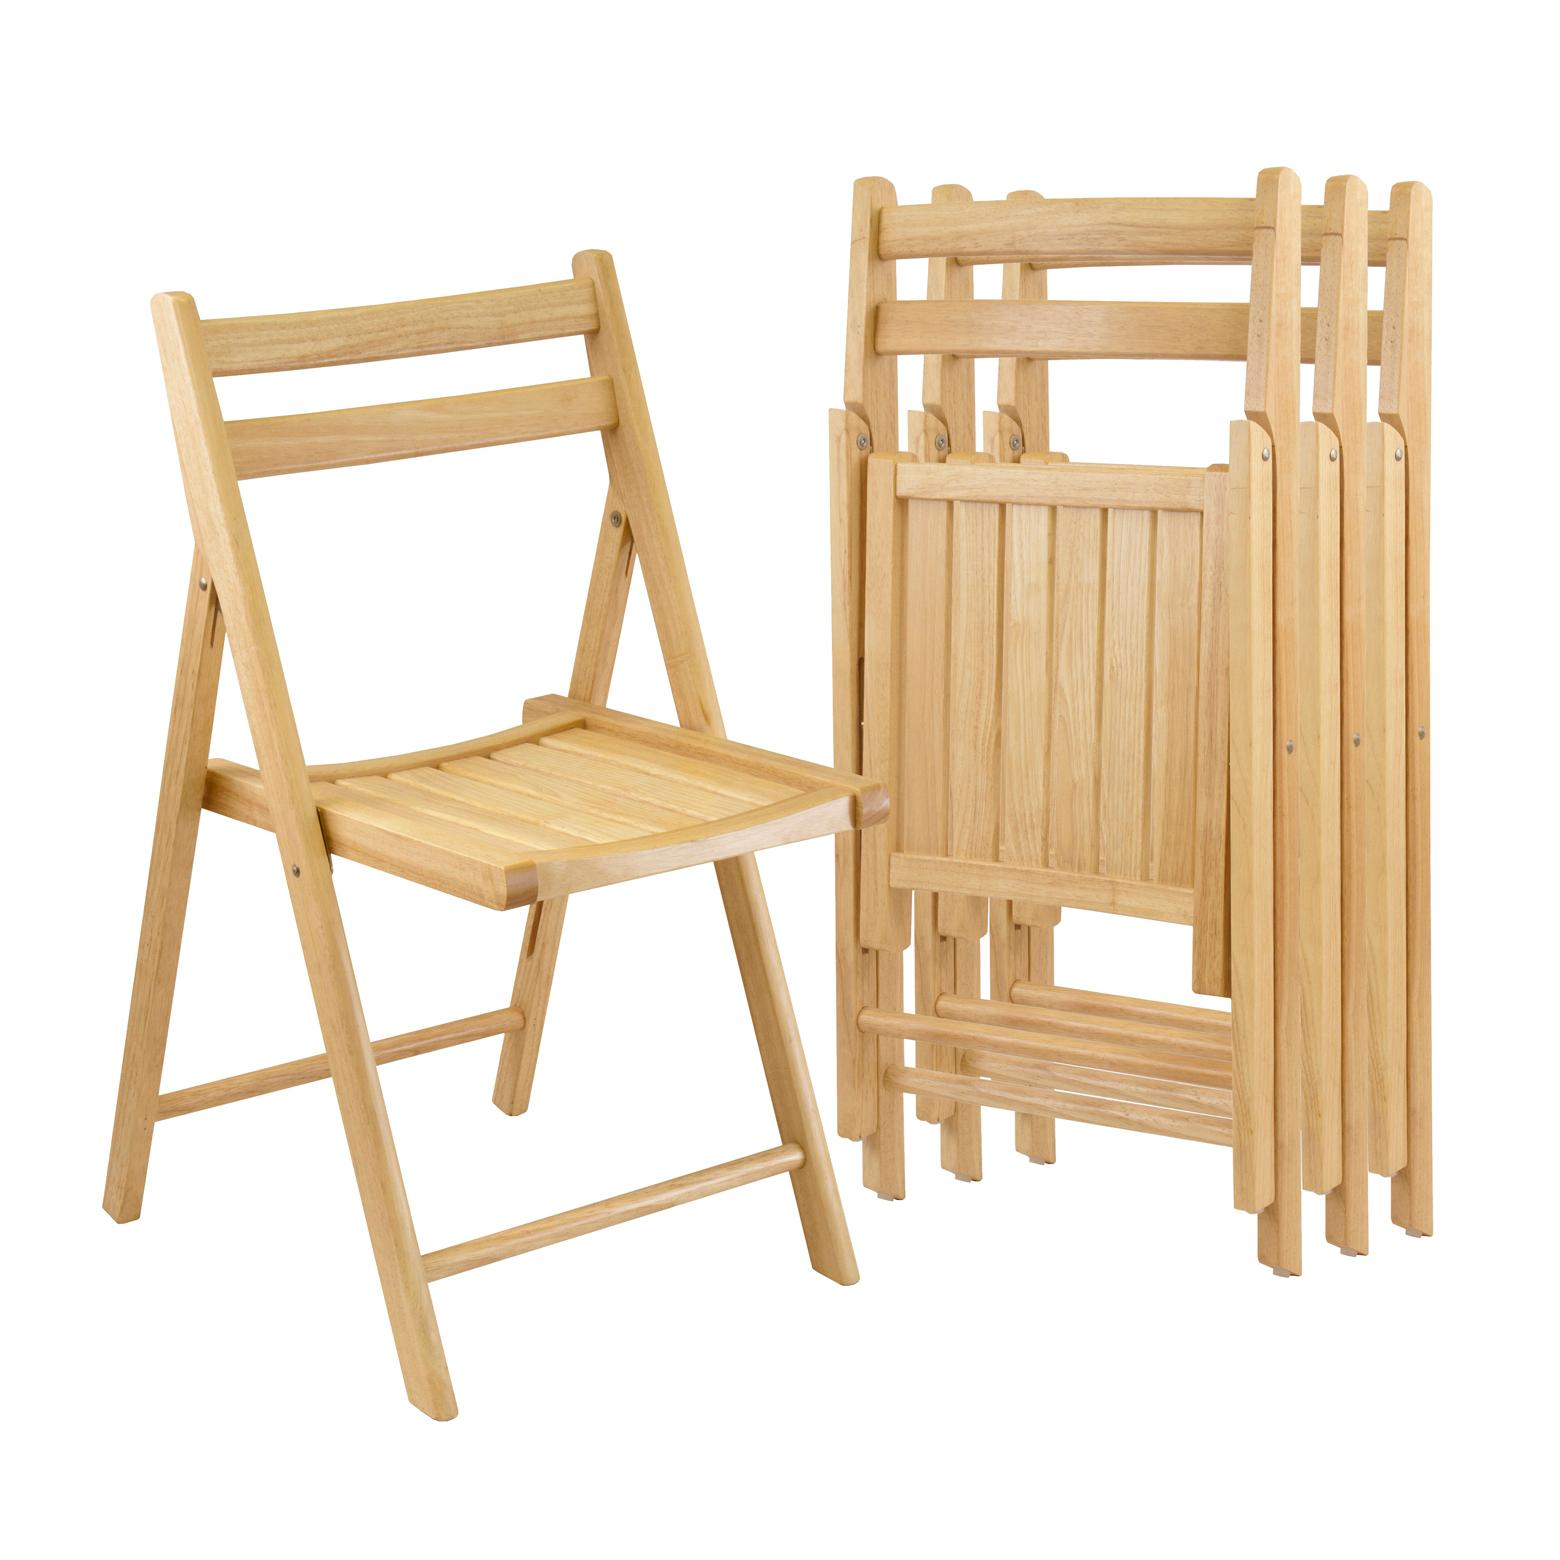 Winsome Wood Folding Chairs Natural Finish Set of 4 Amazon